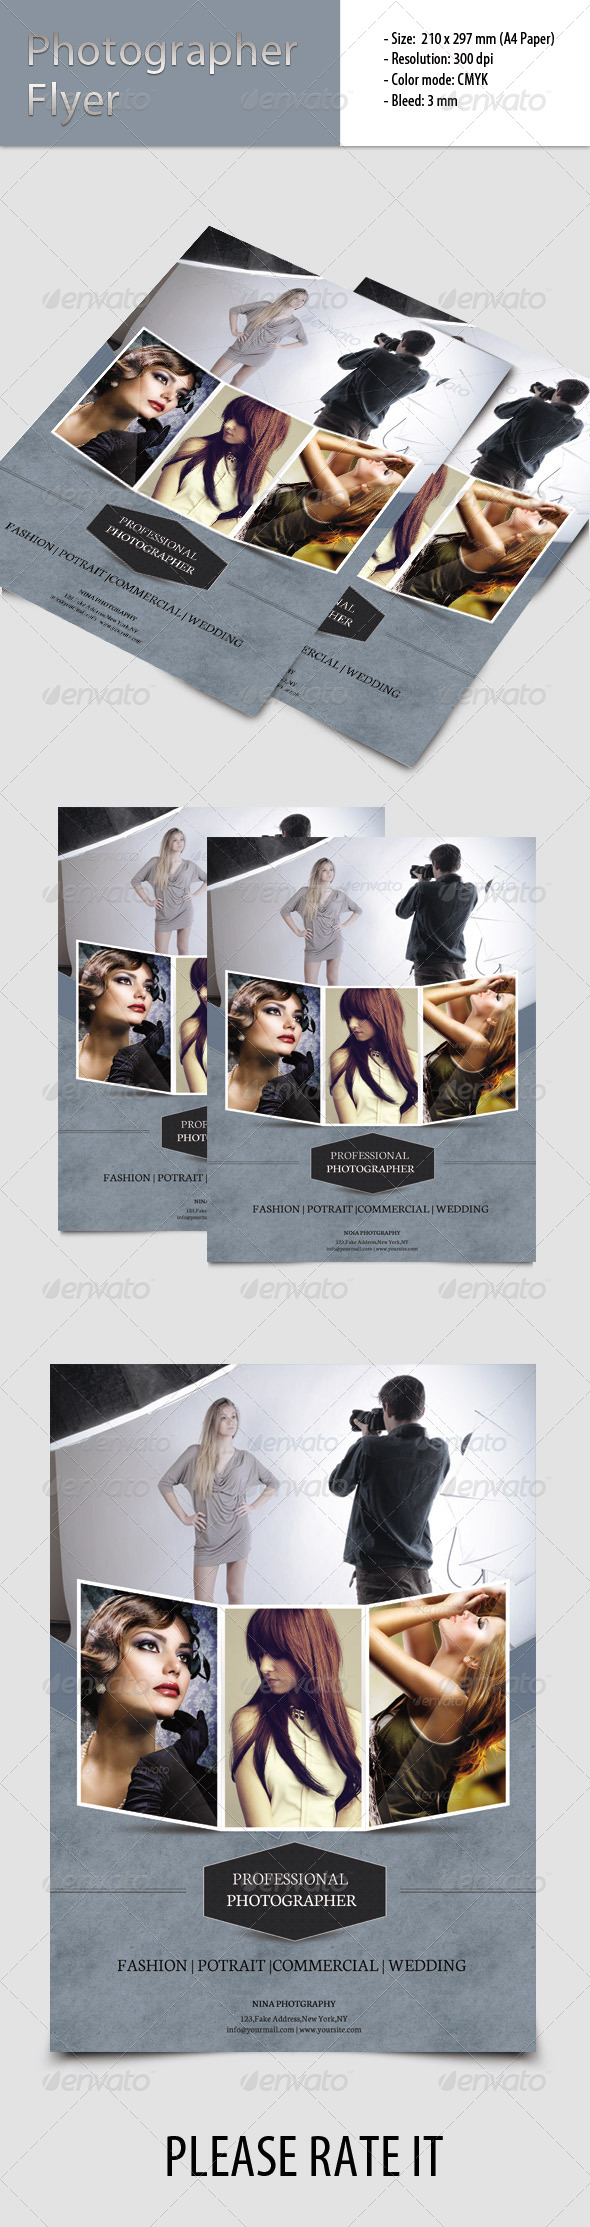 GraphicRiver Flyer for Photographer 6815868